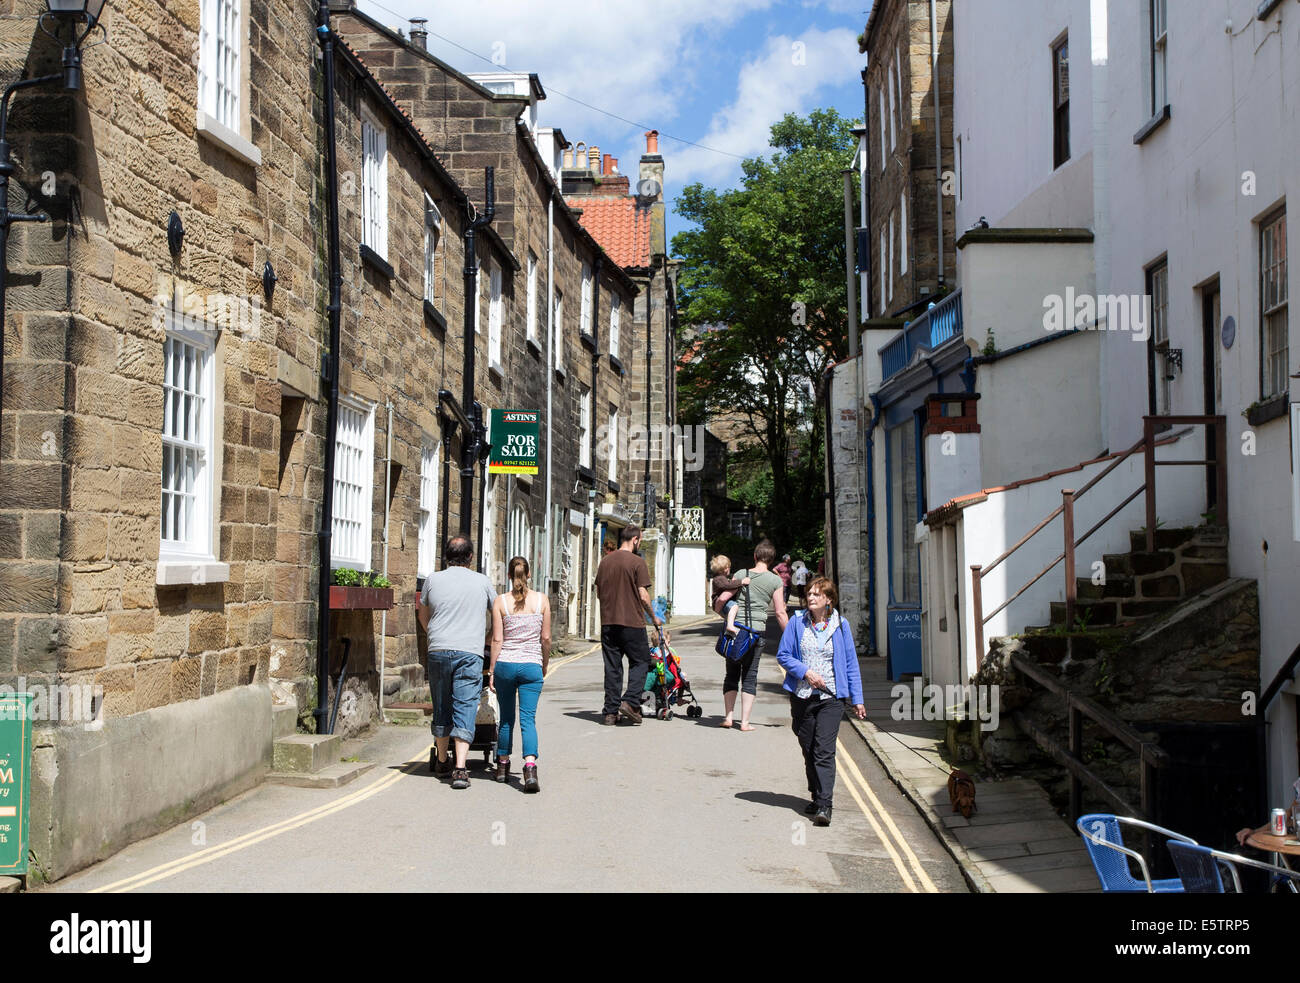 Street Scene with House For Sale Sign in Robin Hood's Bay, North Yorkshire England UK - Stock Image